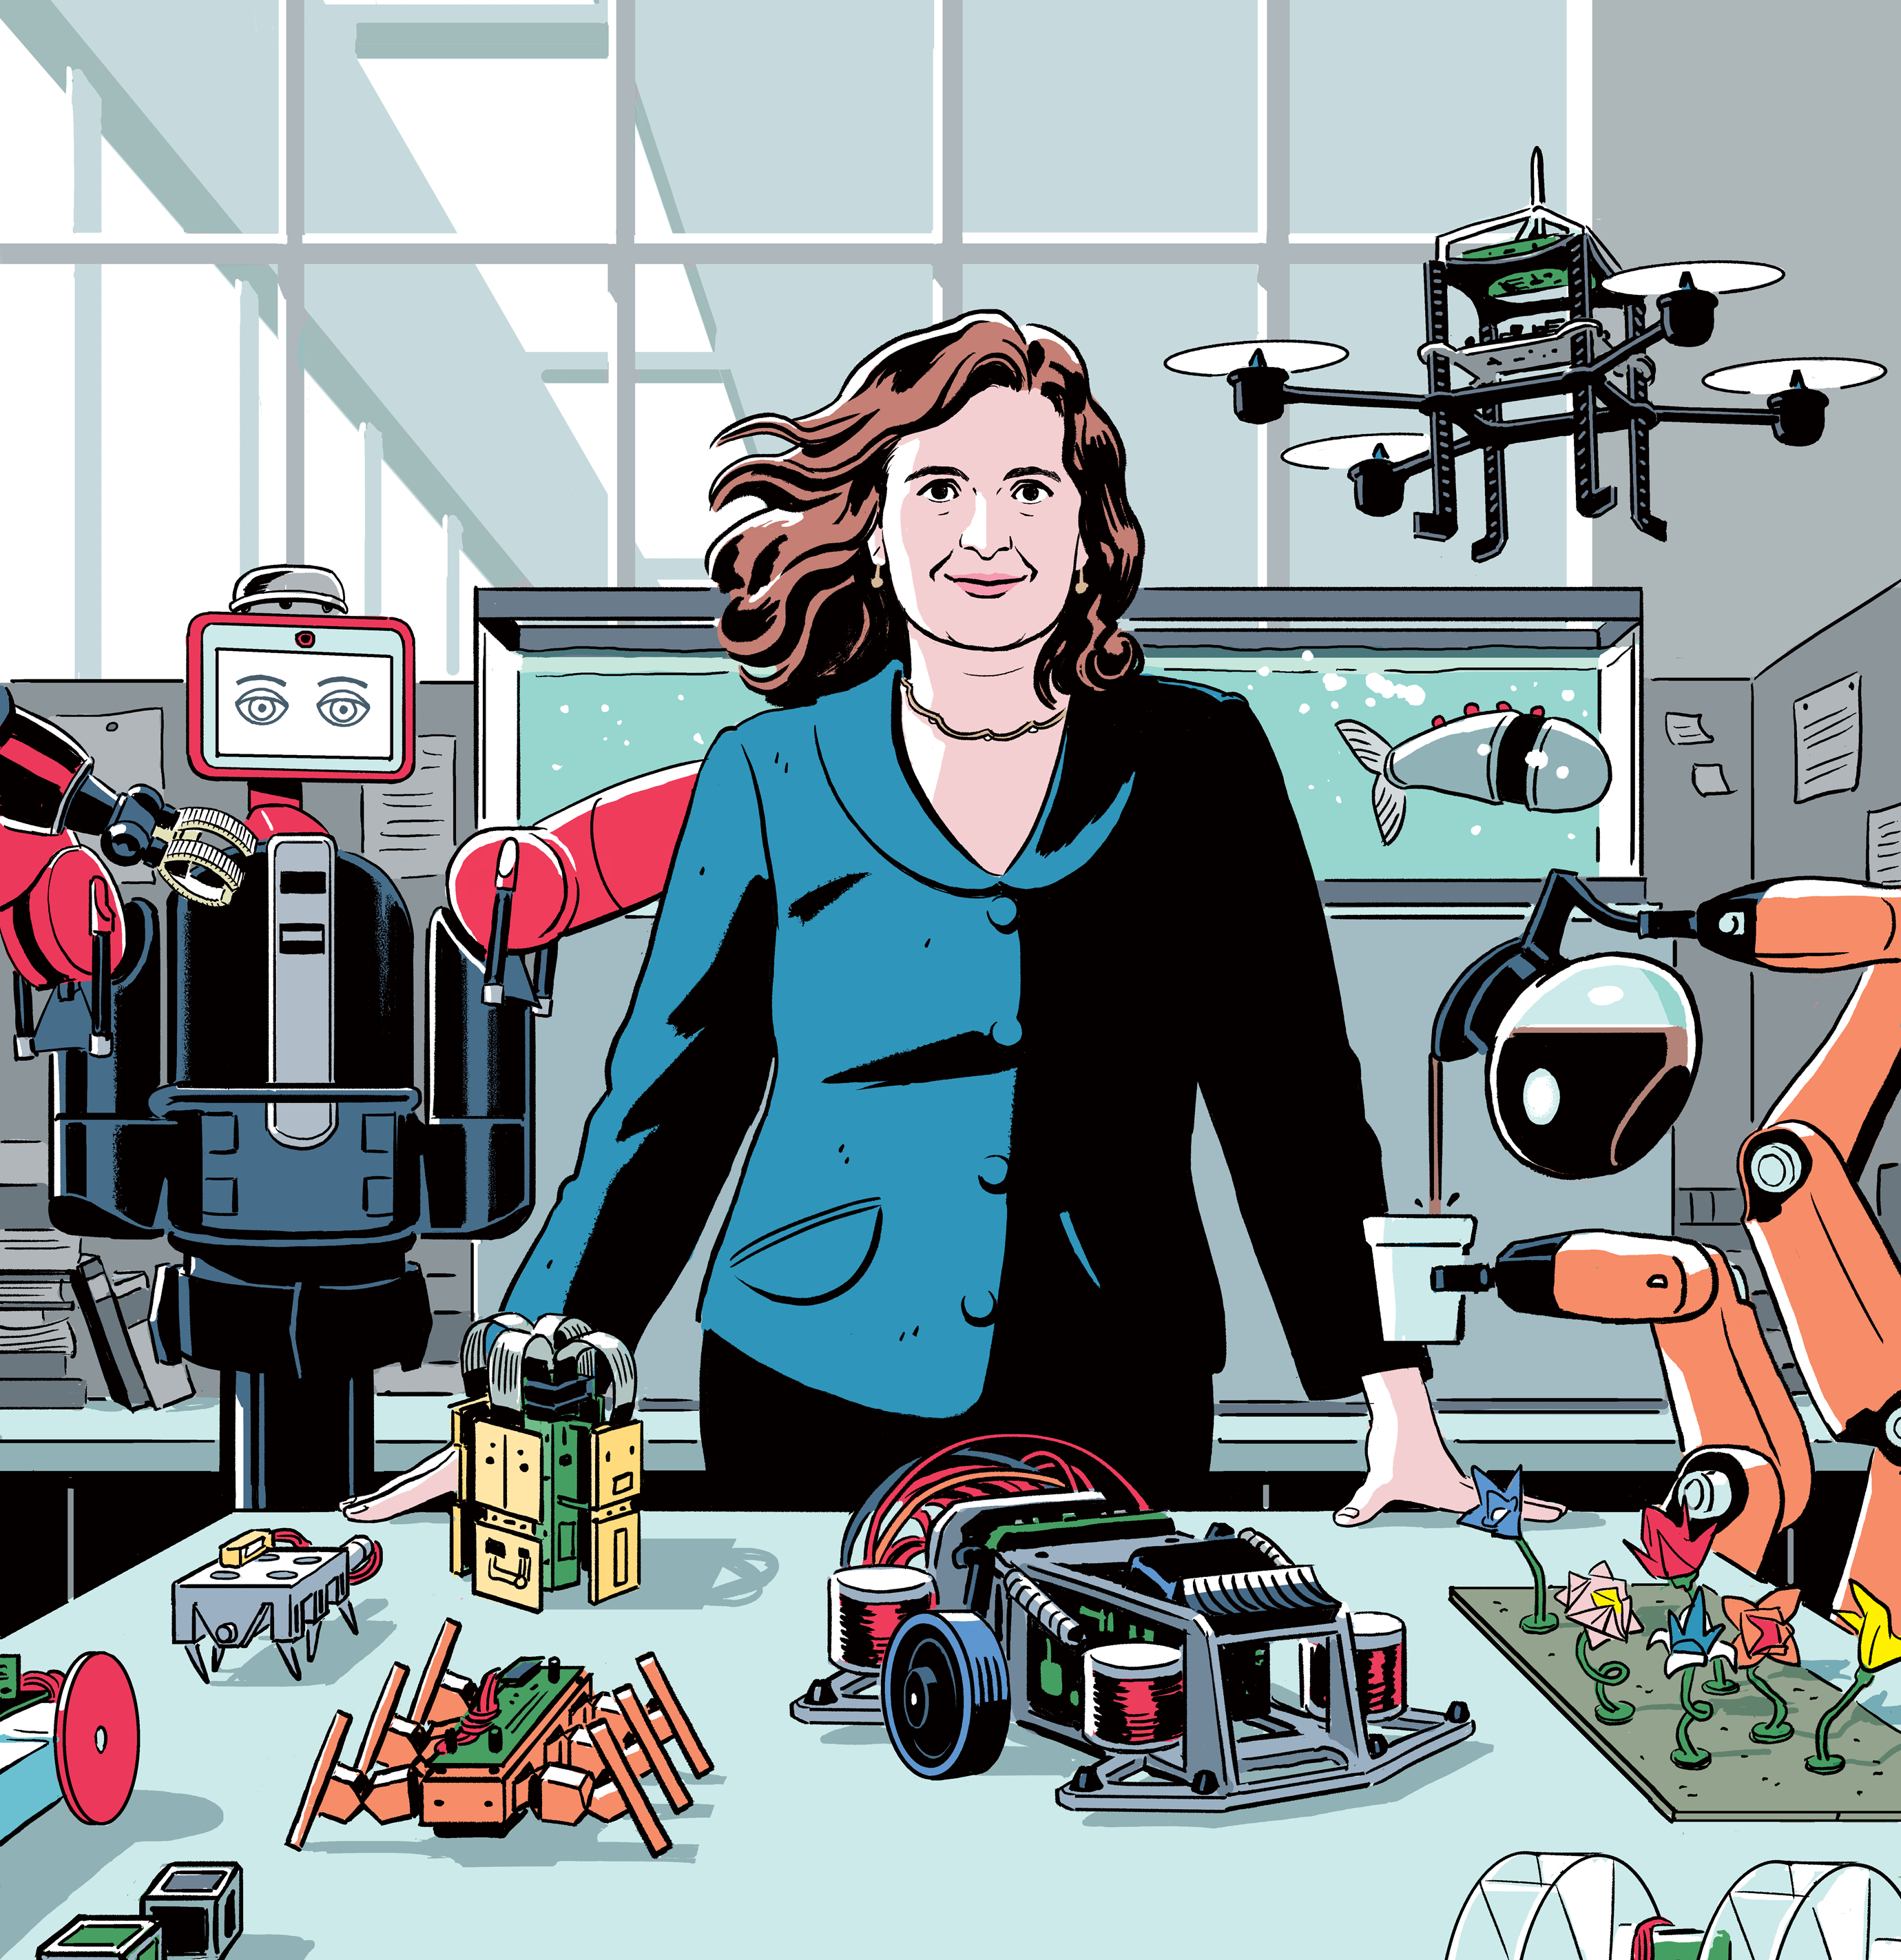 "<b><a href=""https://www.technologyreview.com/mit-news/2017/11/"">Daniela Rus: Building Tomorrow's Robots</a></b> <br> Illustration by R. Kikuo Johnson"